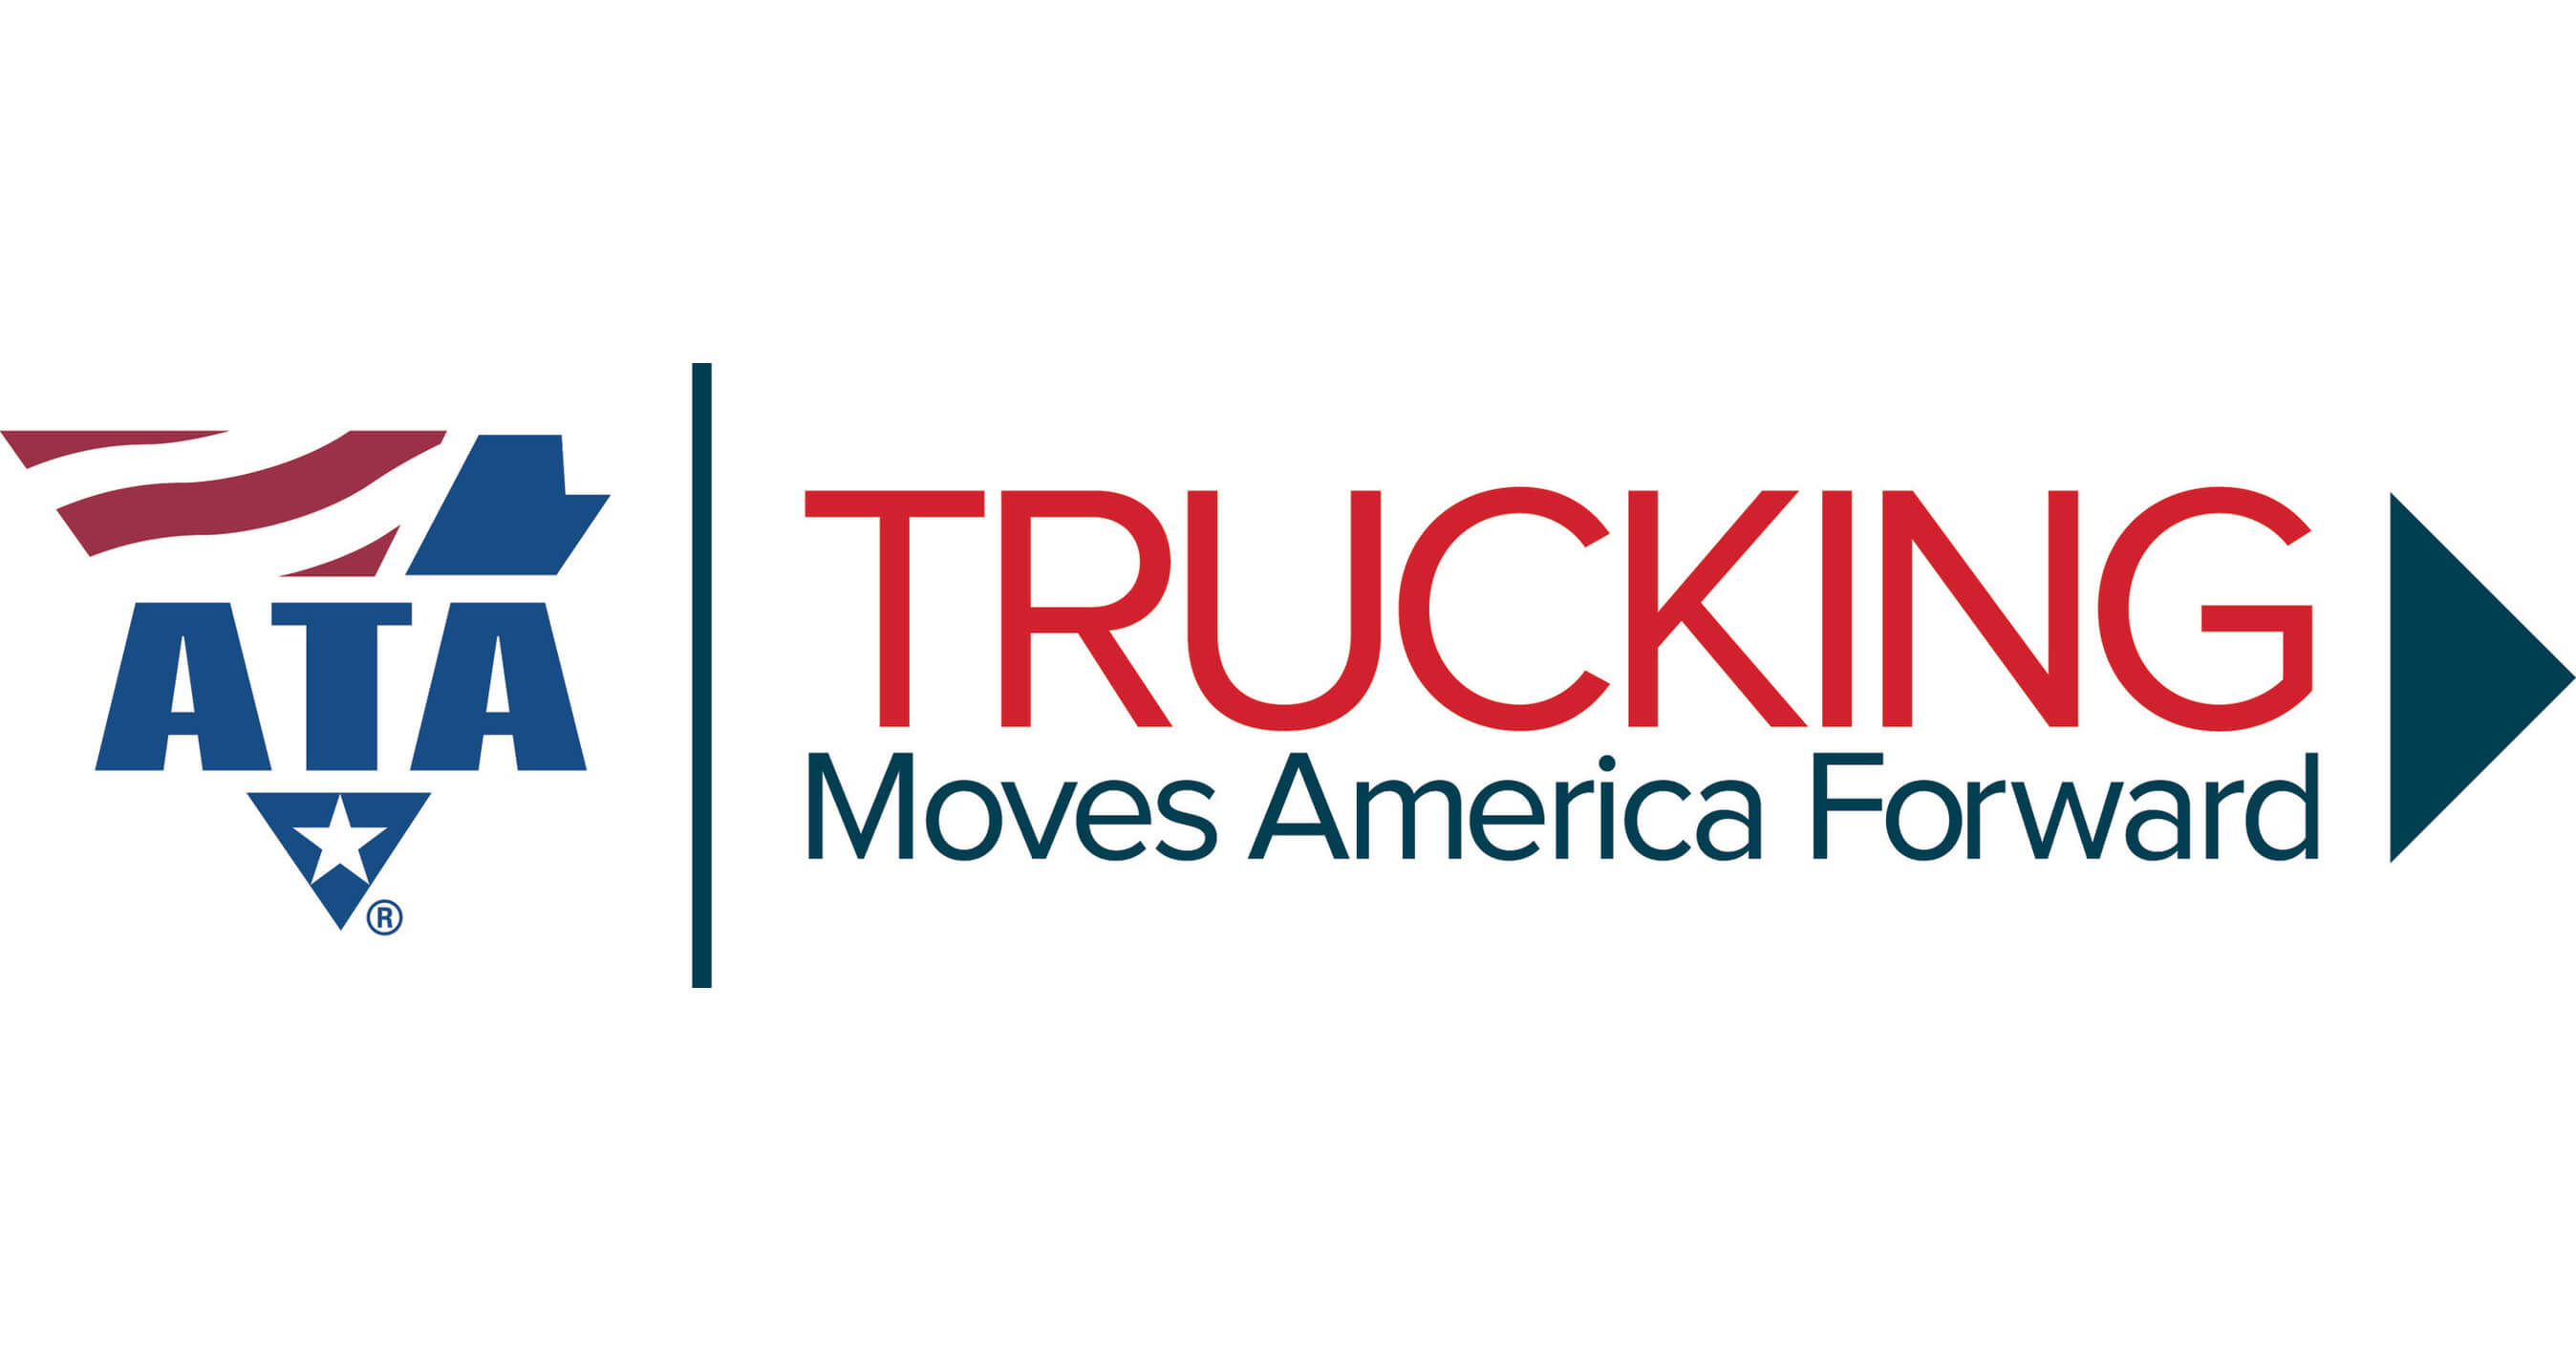 ATA Trucking Moves Forward